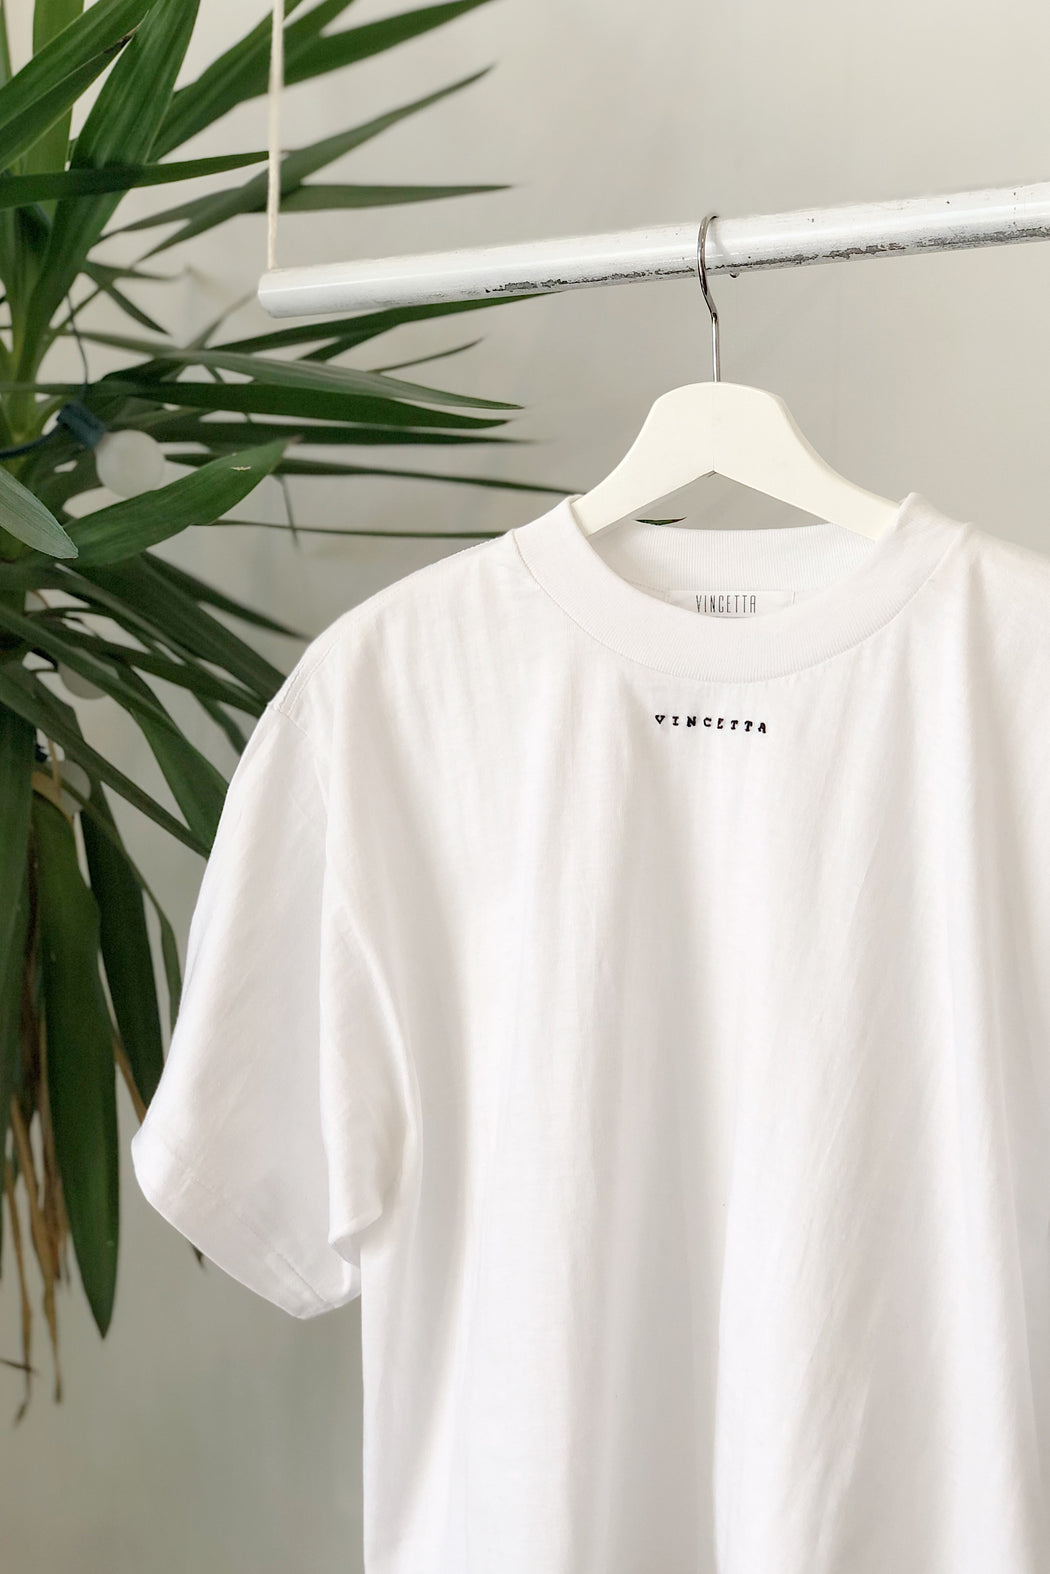 The Vincetta Tee | Hand Embroidered